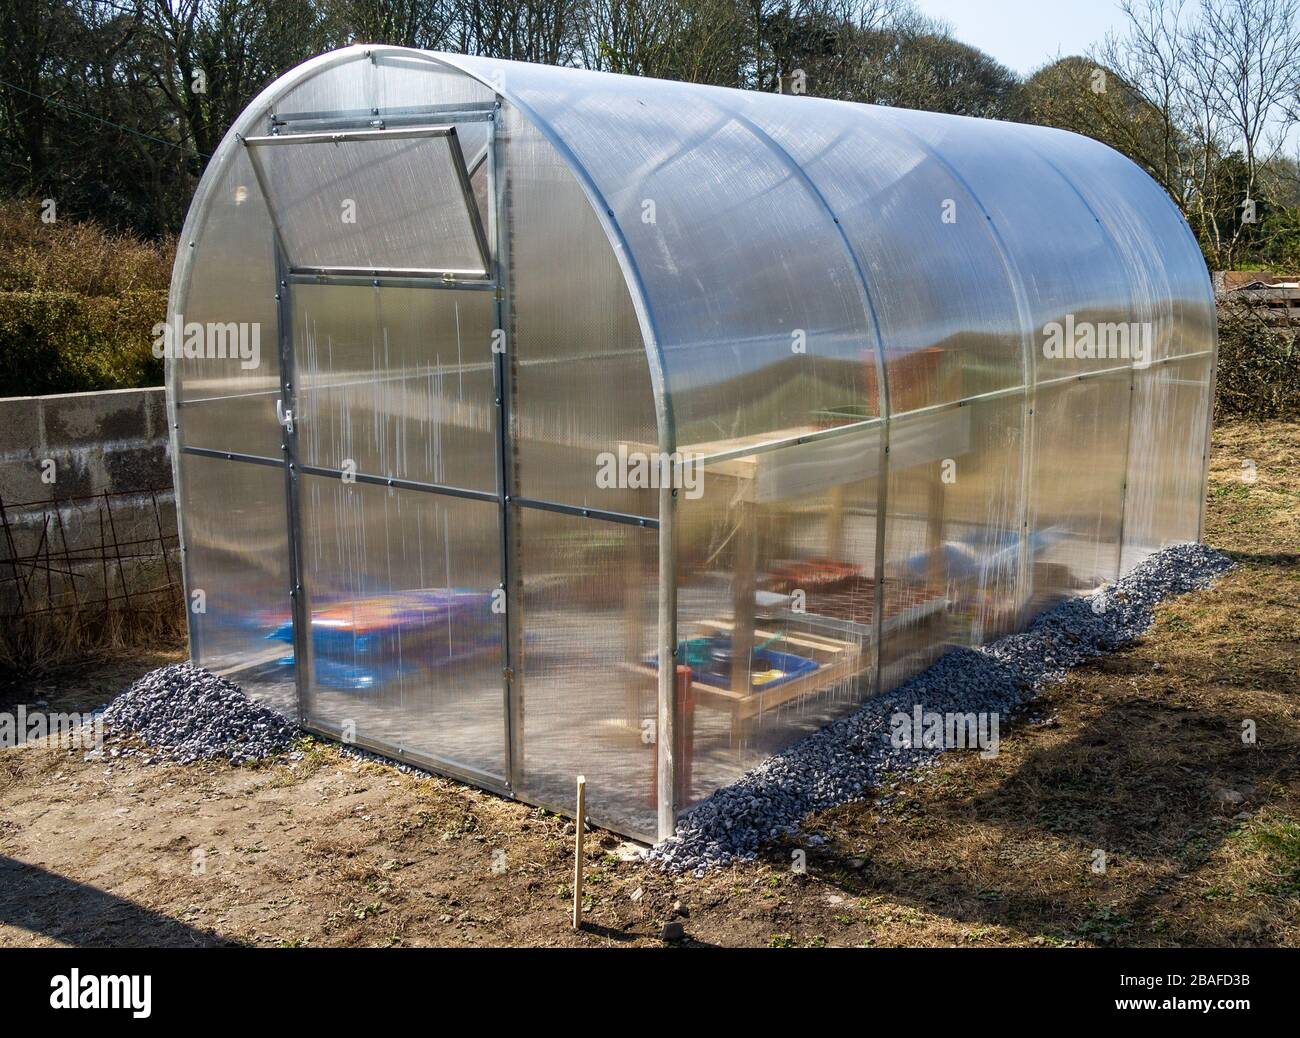 polycarbonate-greenhouse-in-a-domestic-garden-2BAFD3B.jpg